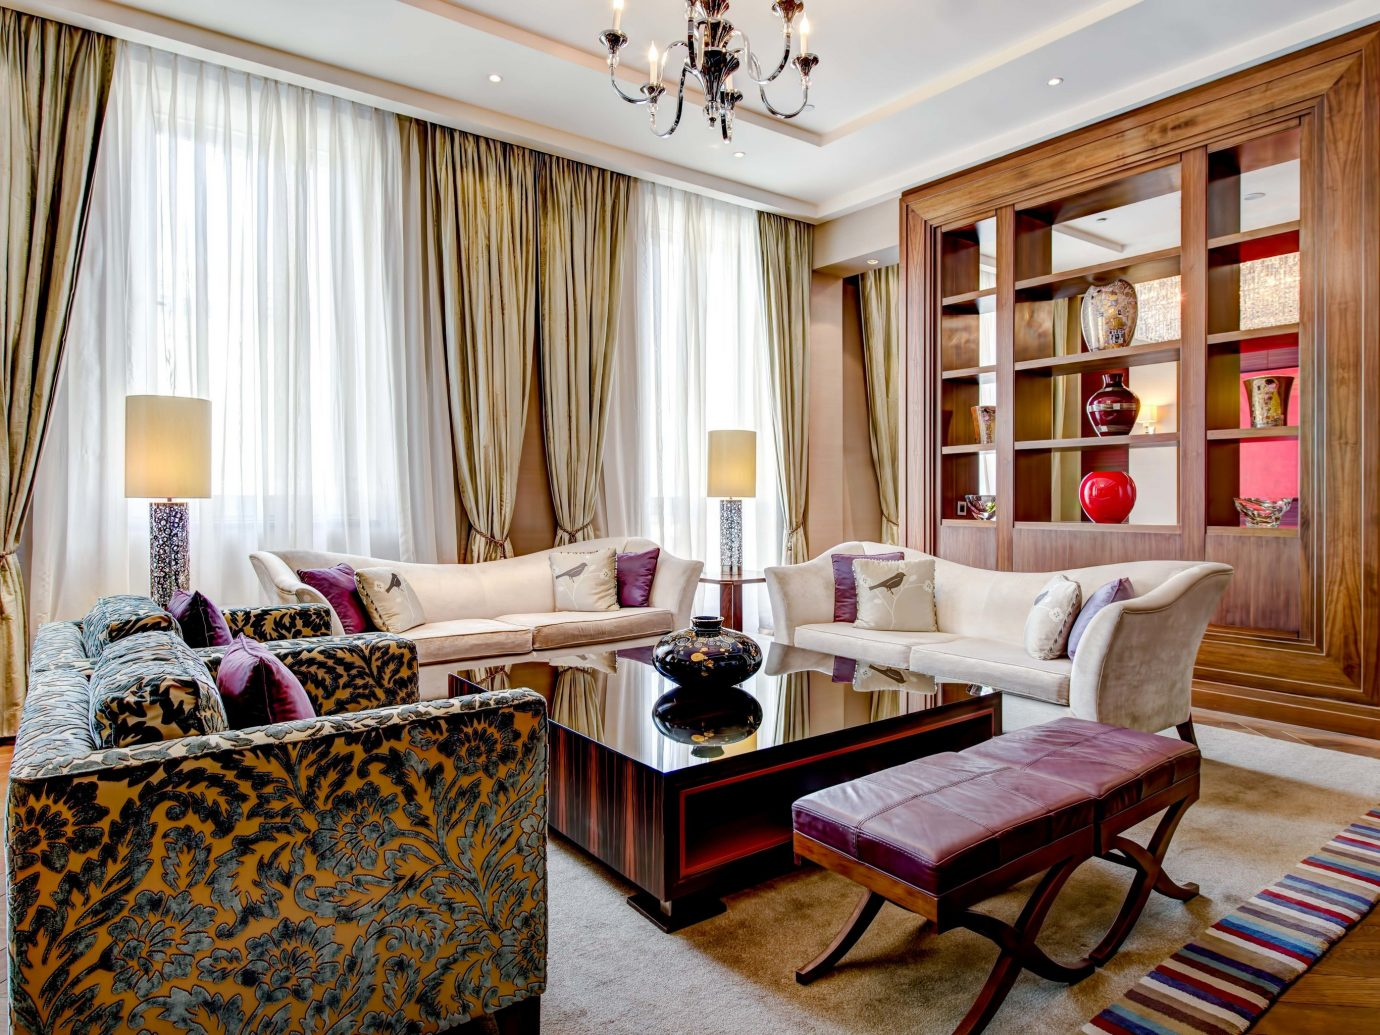 Arts + Culture Hotels Jetsetter Guides Luxury Travel indoor floor room Living window living room interior design Suite ceiling furniture home window treatment interior designer flooring Bedroom decorated